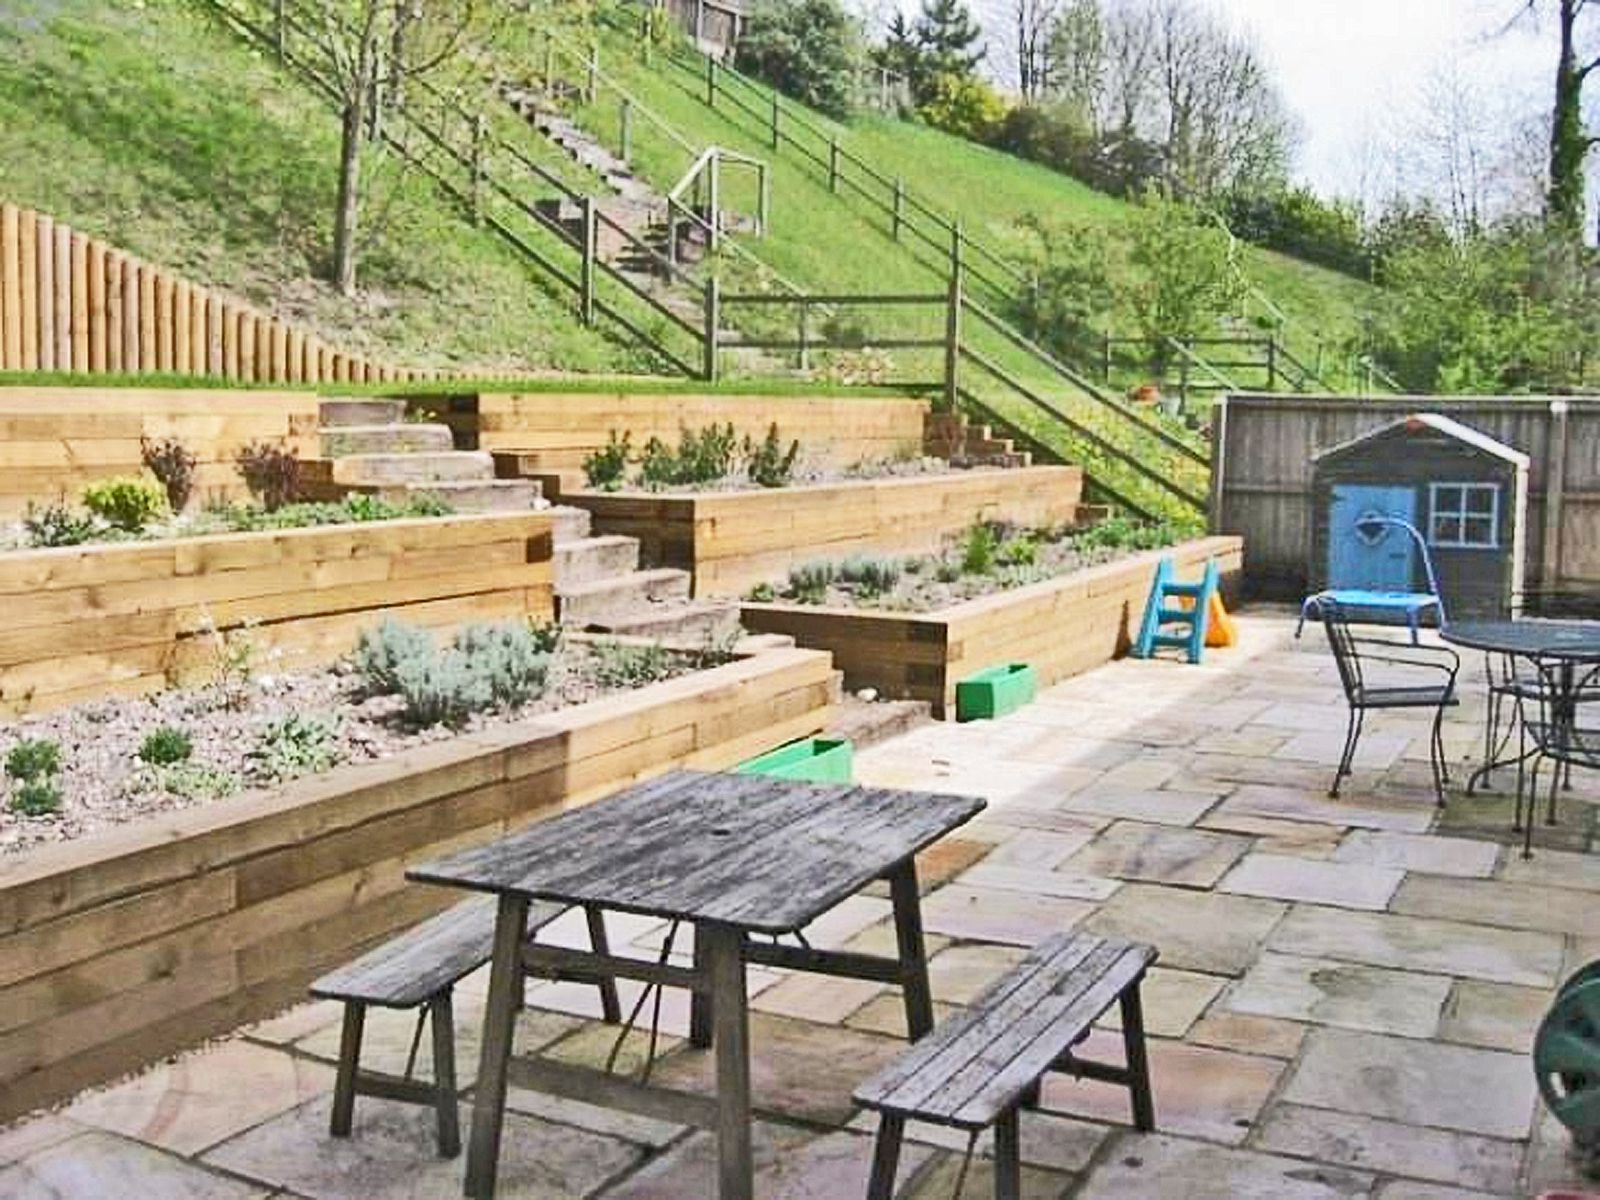 13 Hillside Landscaping Ideas To Maximize Your Yard pertaining to Landscaping Ideas For A Hill In Backyard